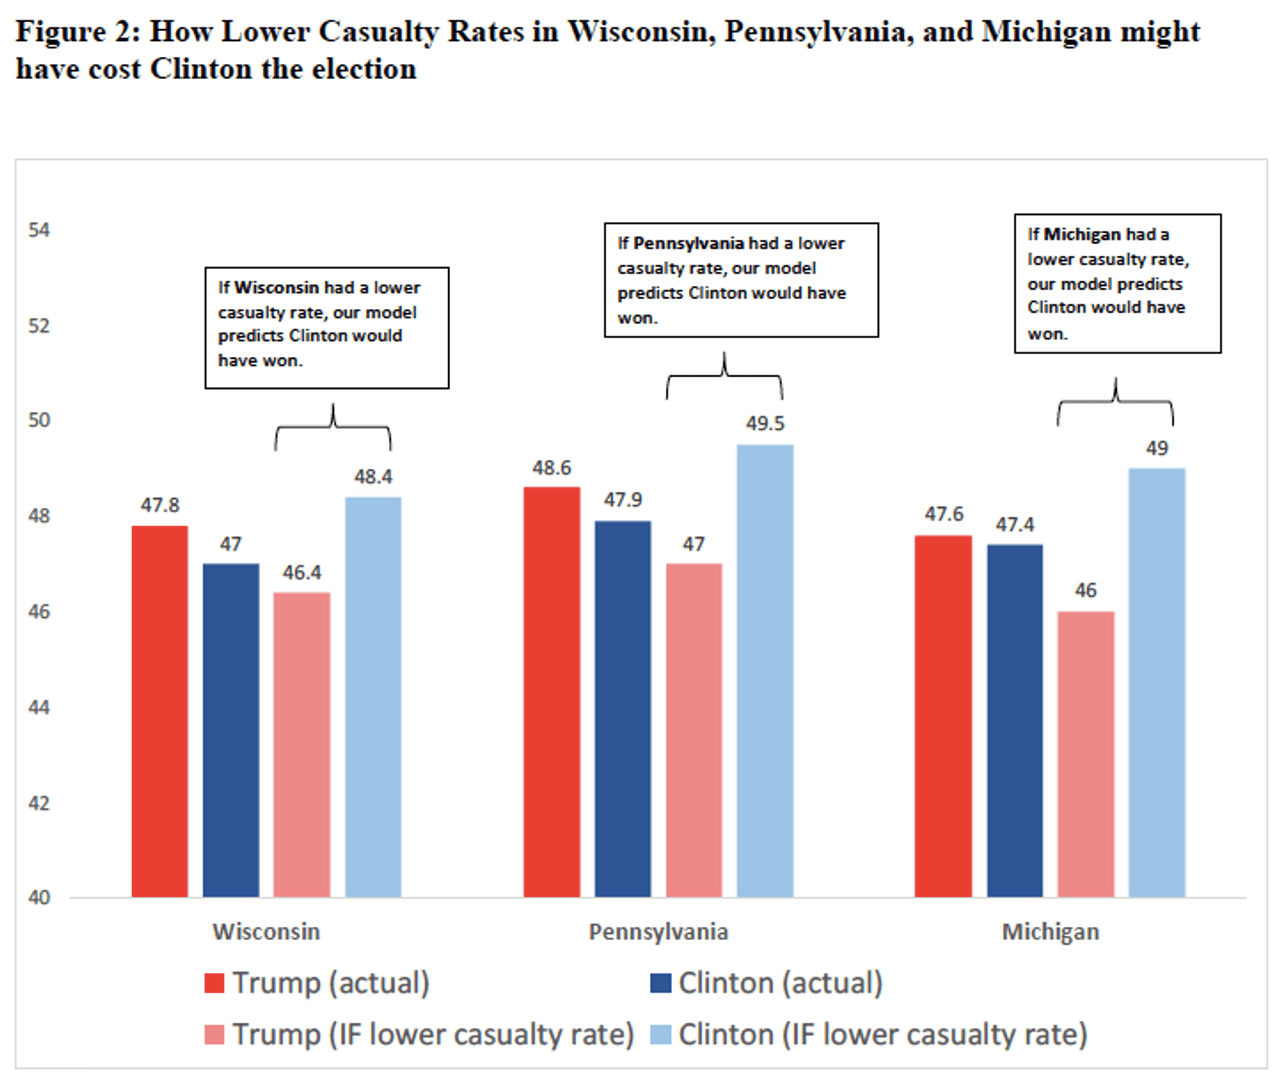 How lower casualty rates in Wisconsin, Pennsylvania and Michigan might have cost Clinton the election